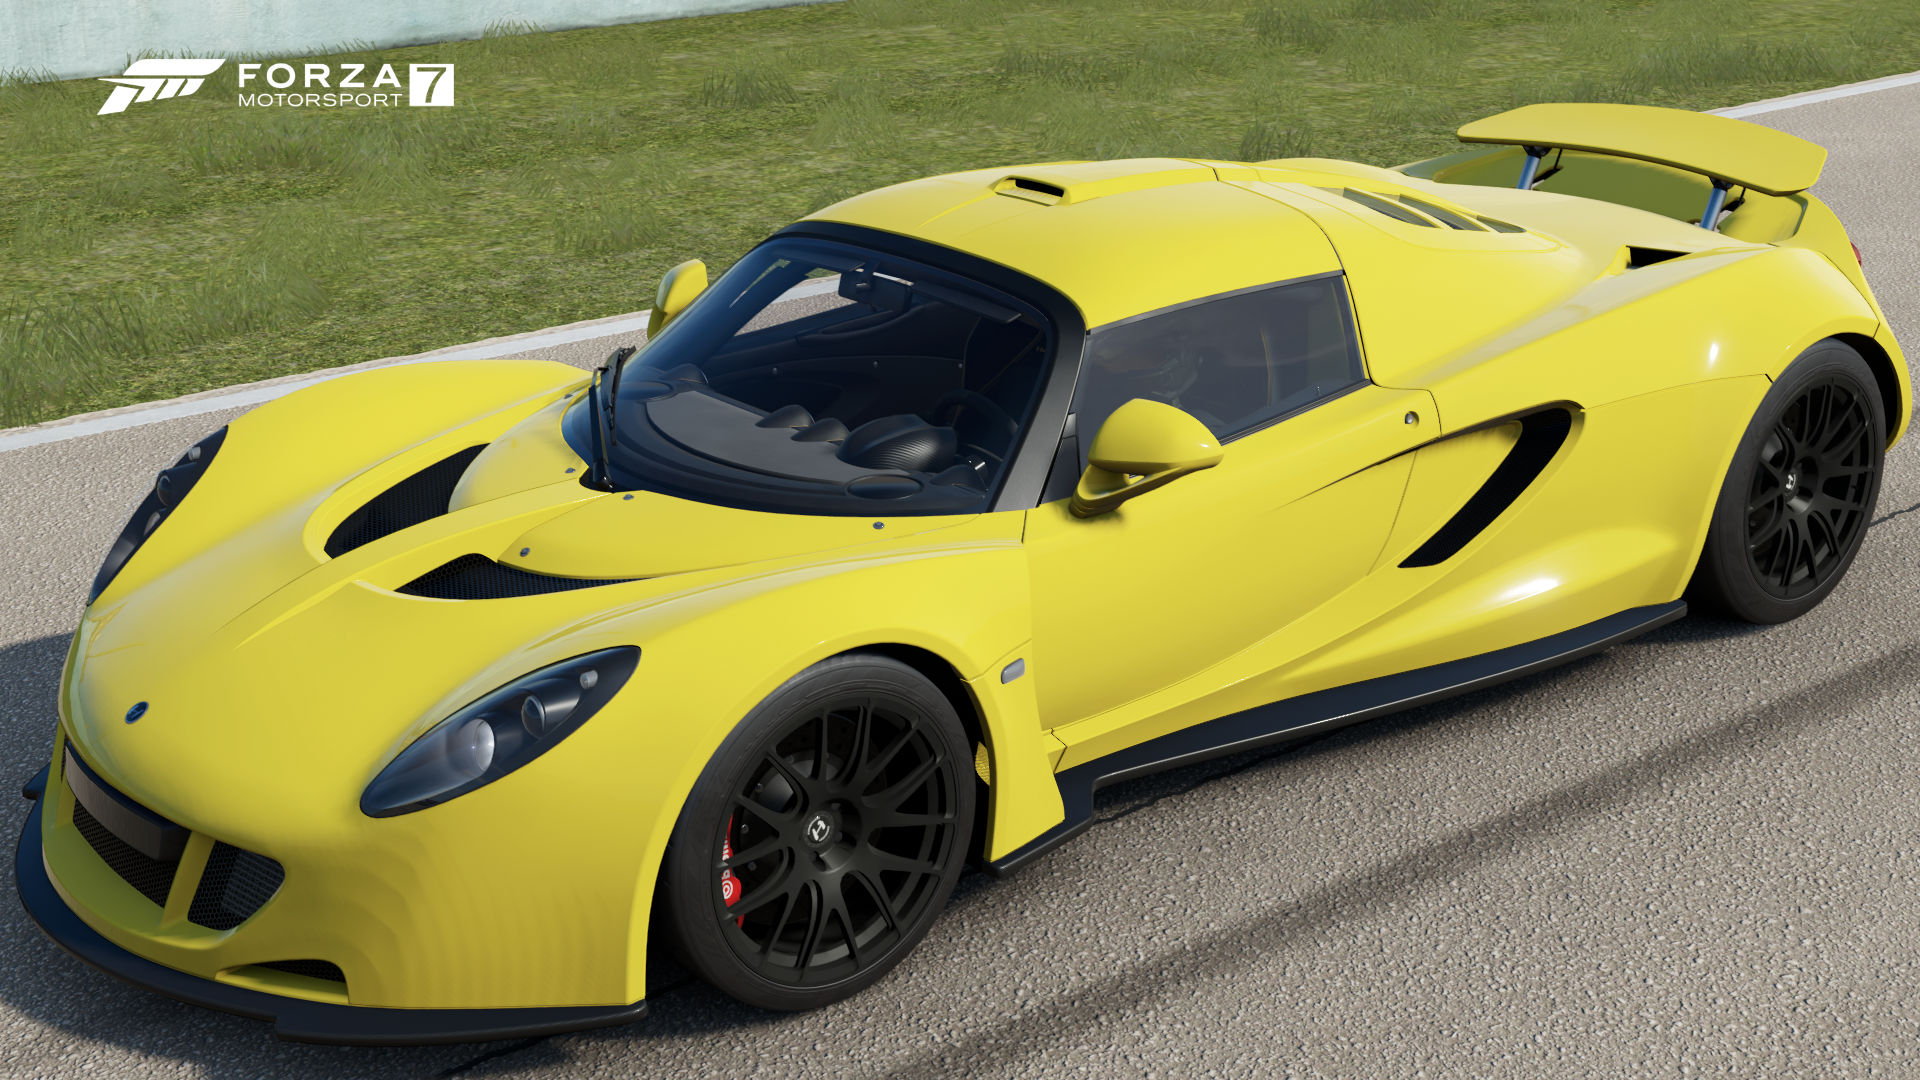 Hennessey Venom GT | Forza Motorsport Wiki | FANDOM powered by Wikia